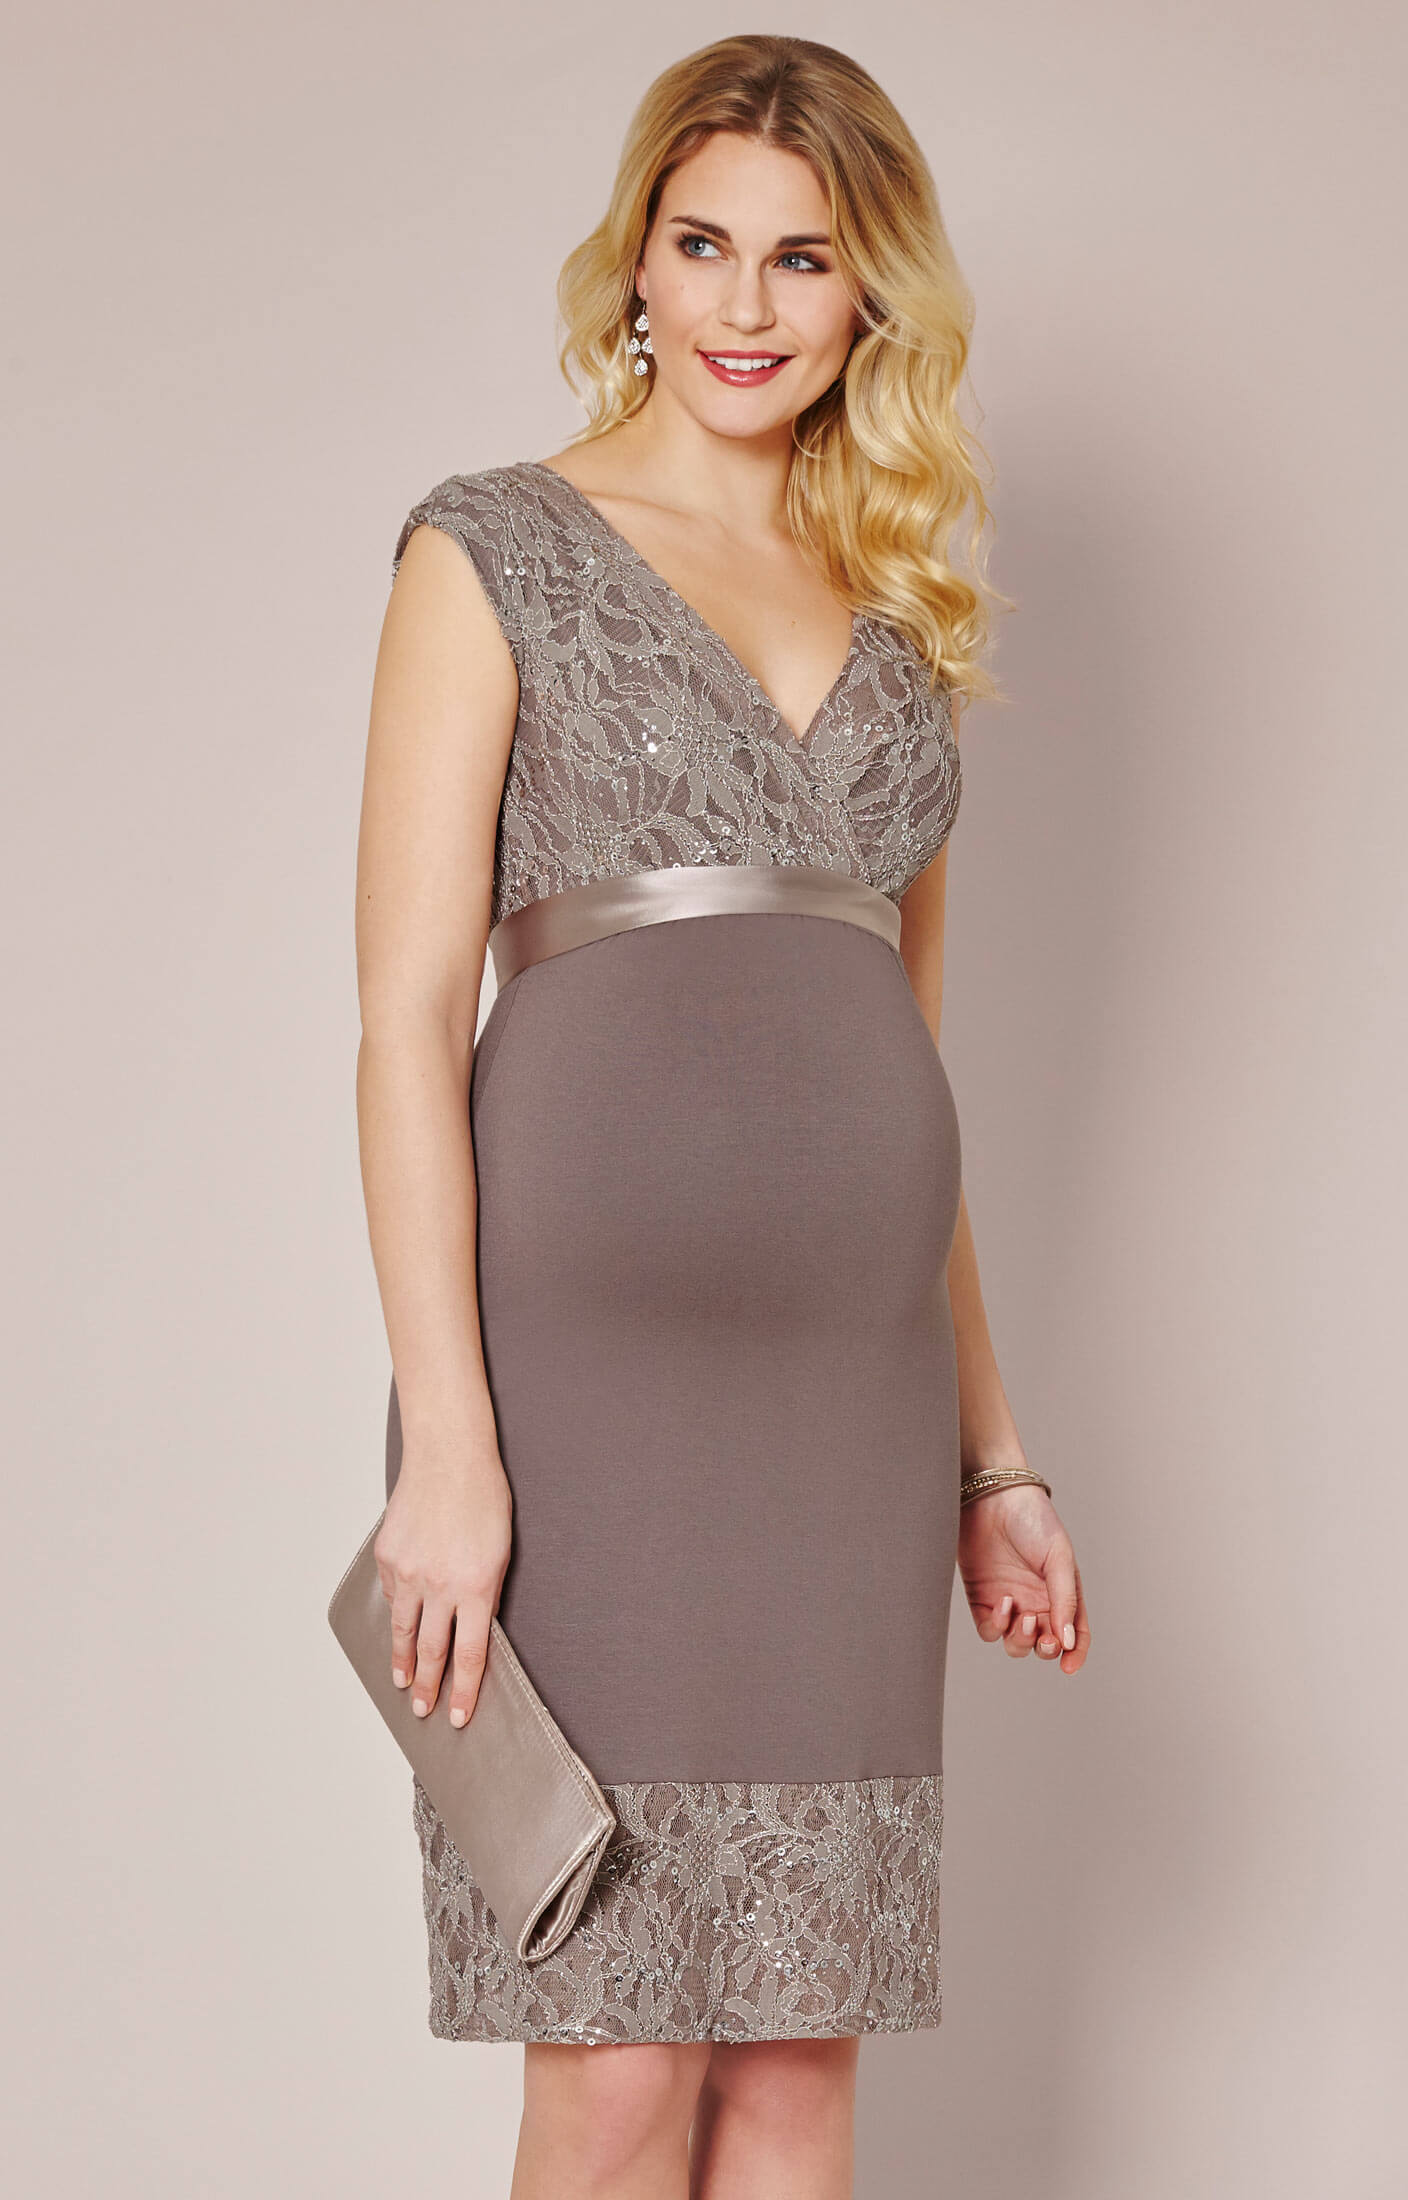 ad581d3923f6 Twilight Lace Maternity Dress (Mocha) - Maternity Wedding Dresses ...